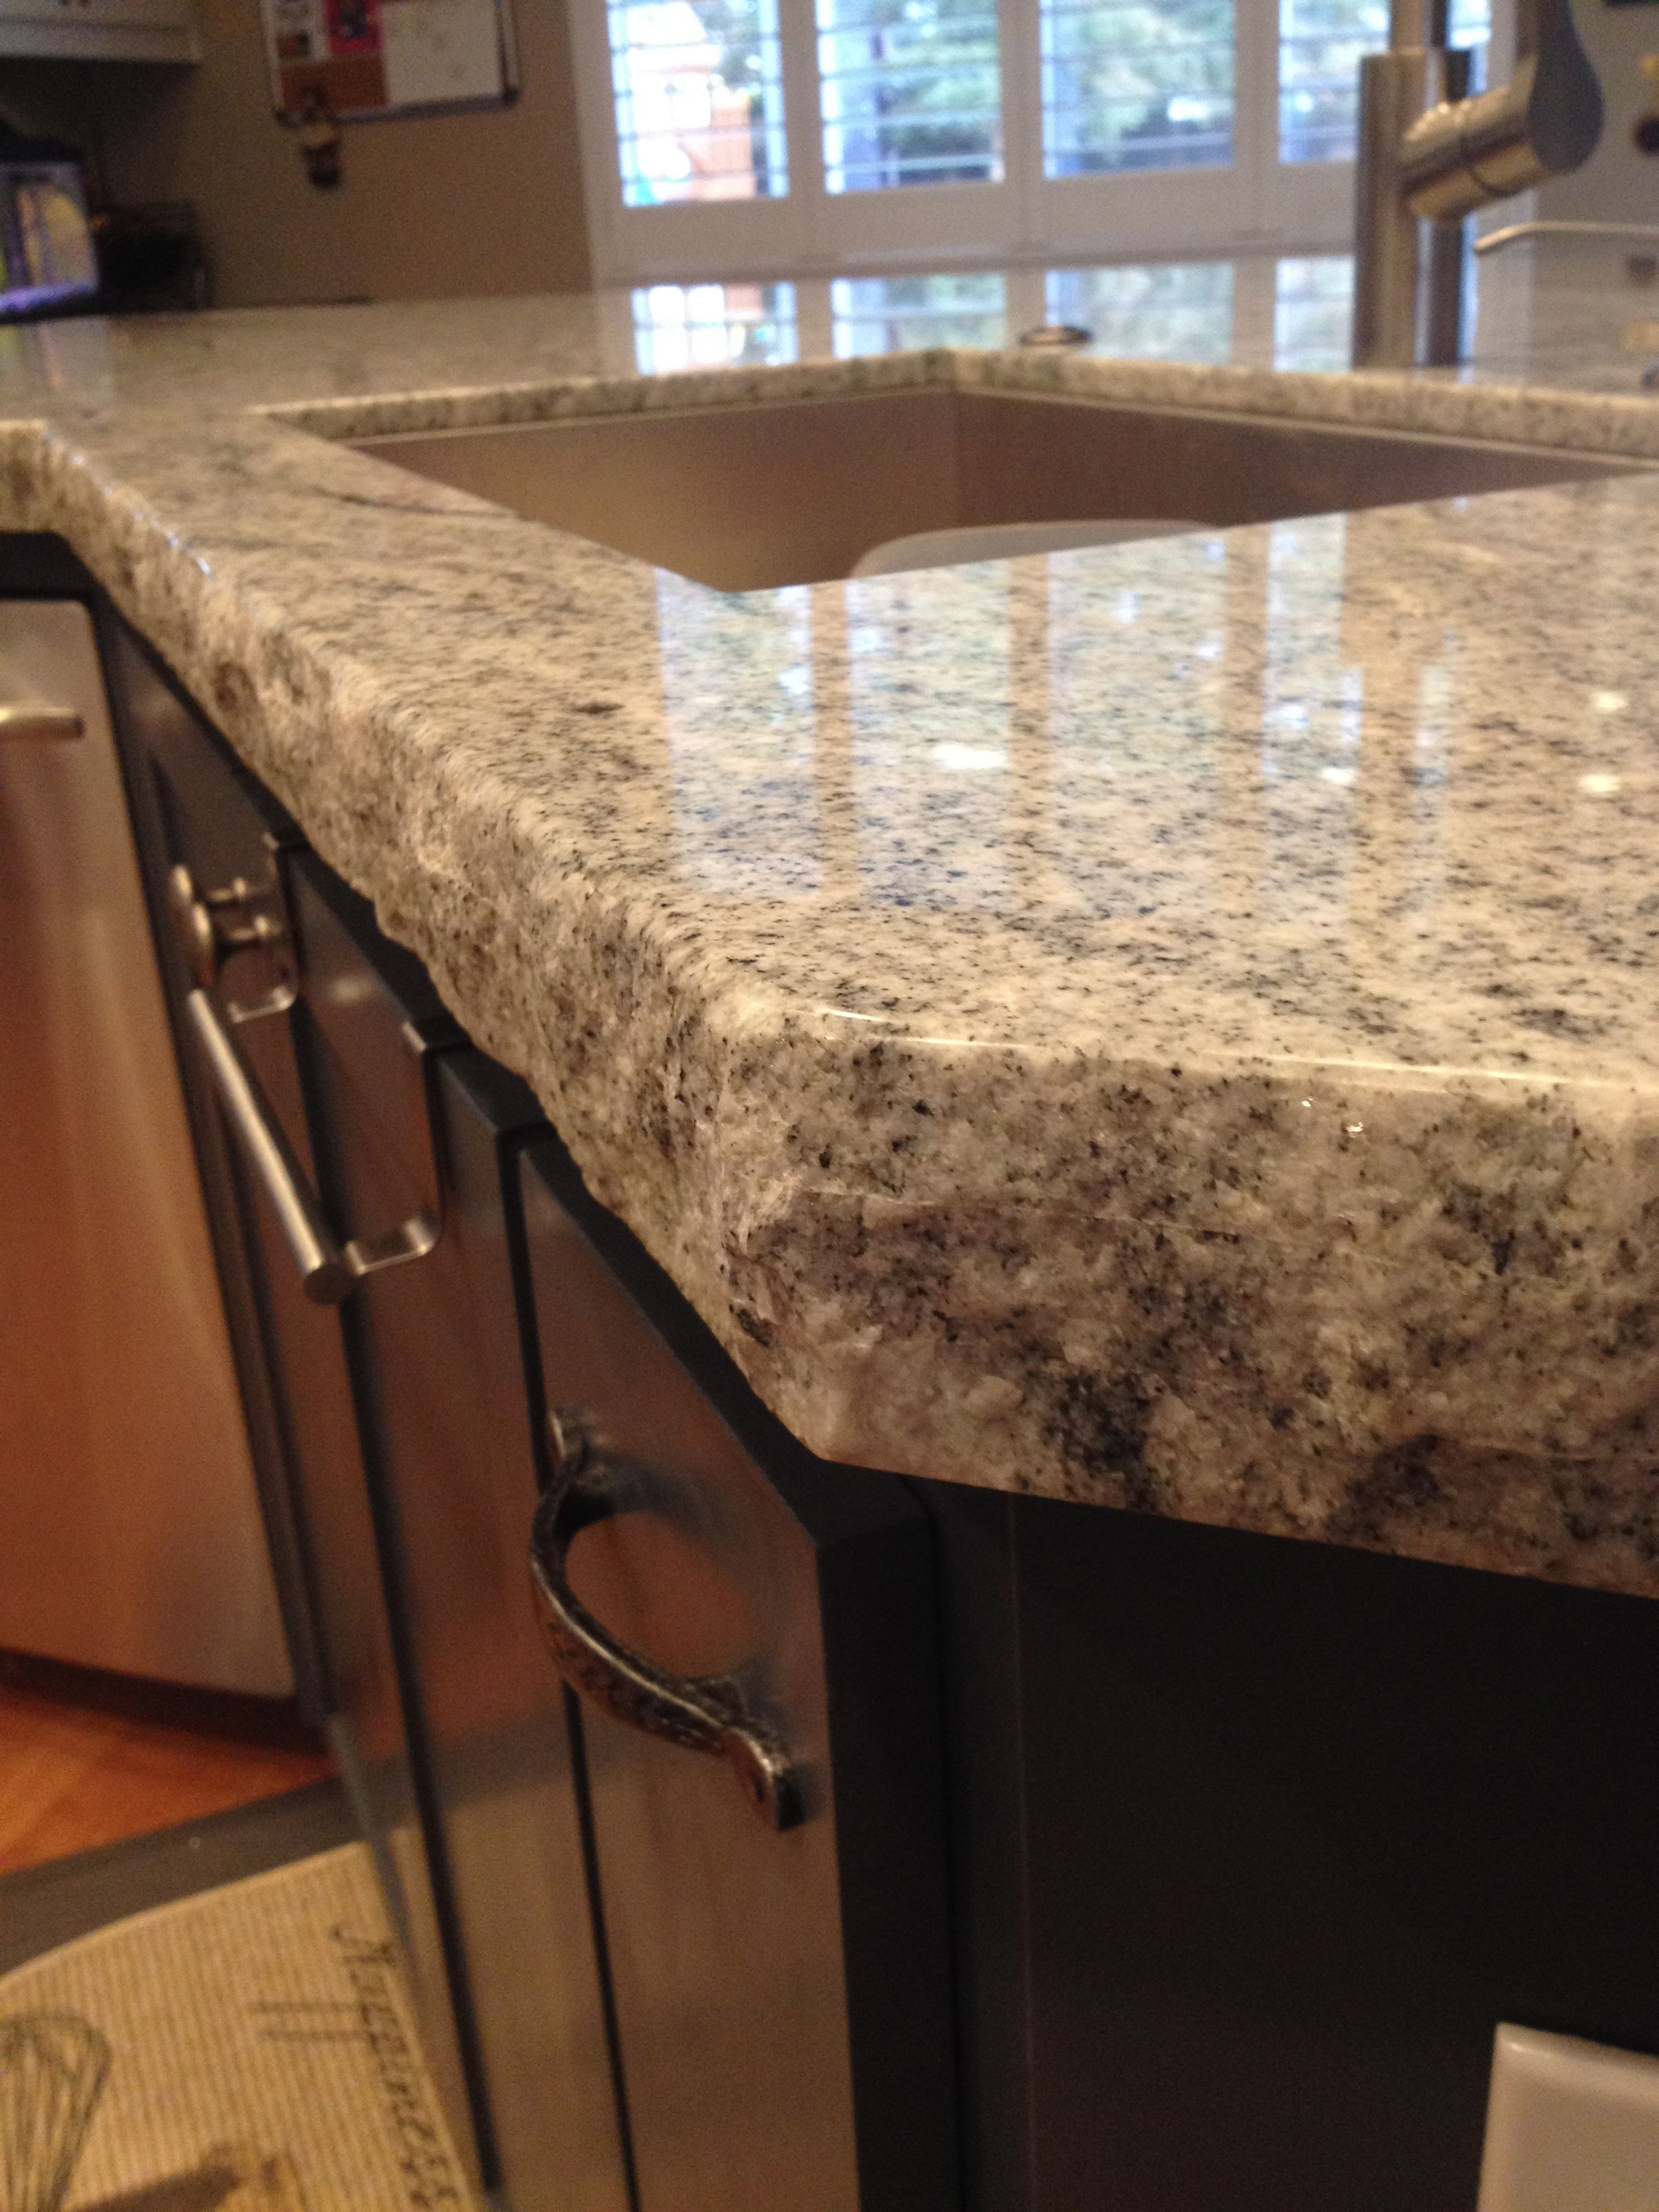 We Love The Rustic Outdoorsy Look With This Double Chisel Edge Granite Counter Top Luxury Outdoor Kitchen Affordable Kitchen Remodeling Galley Kitchen Remodel